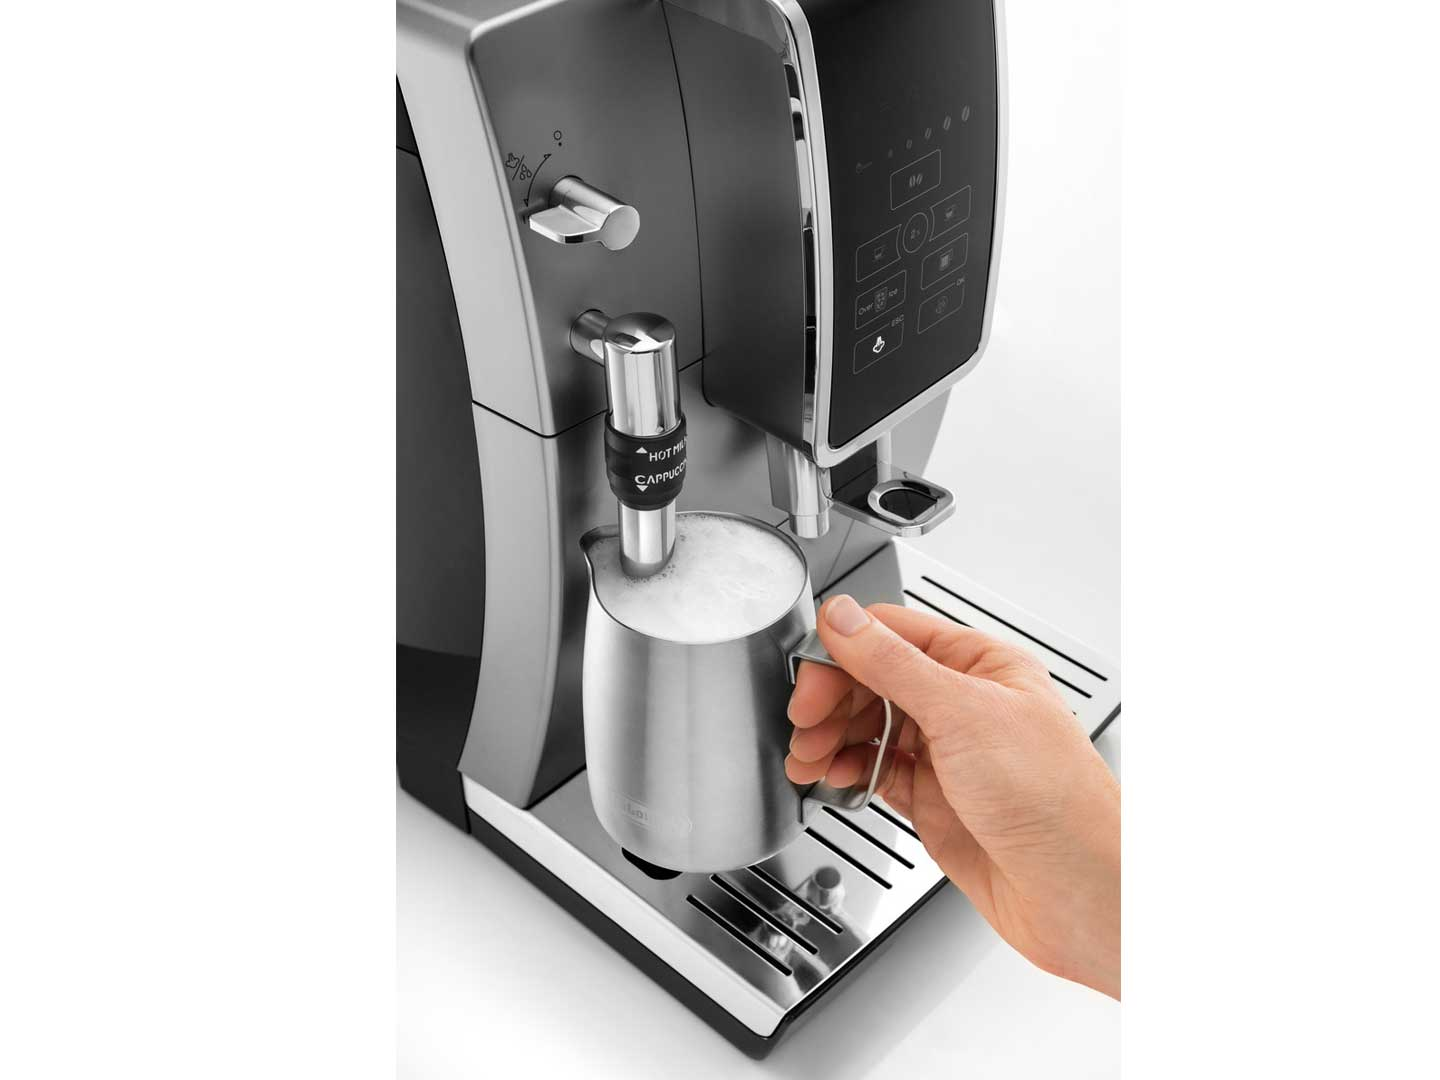 Dinamica Automatic Coffee & Espresso Machine with Iced Coffee + Adjustable Milk Frother, Silver -  - ECAM35025SB